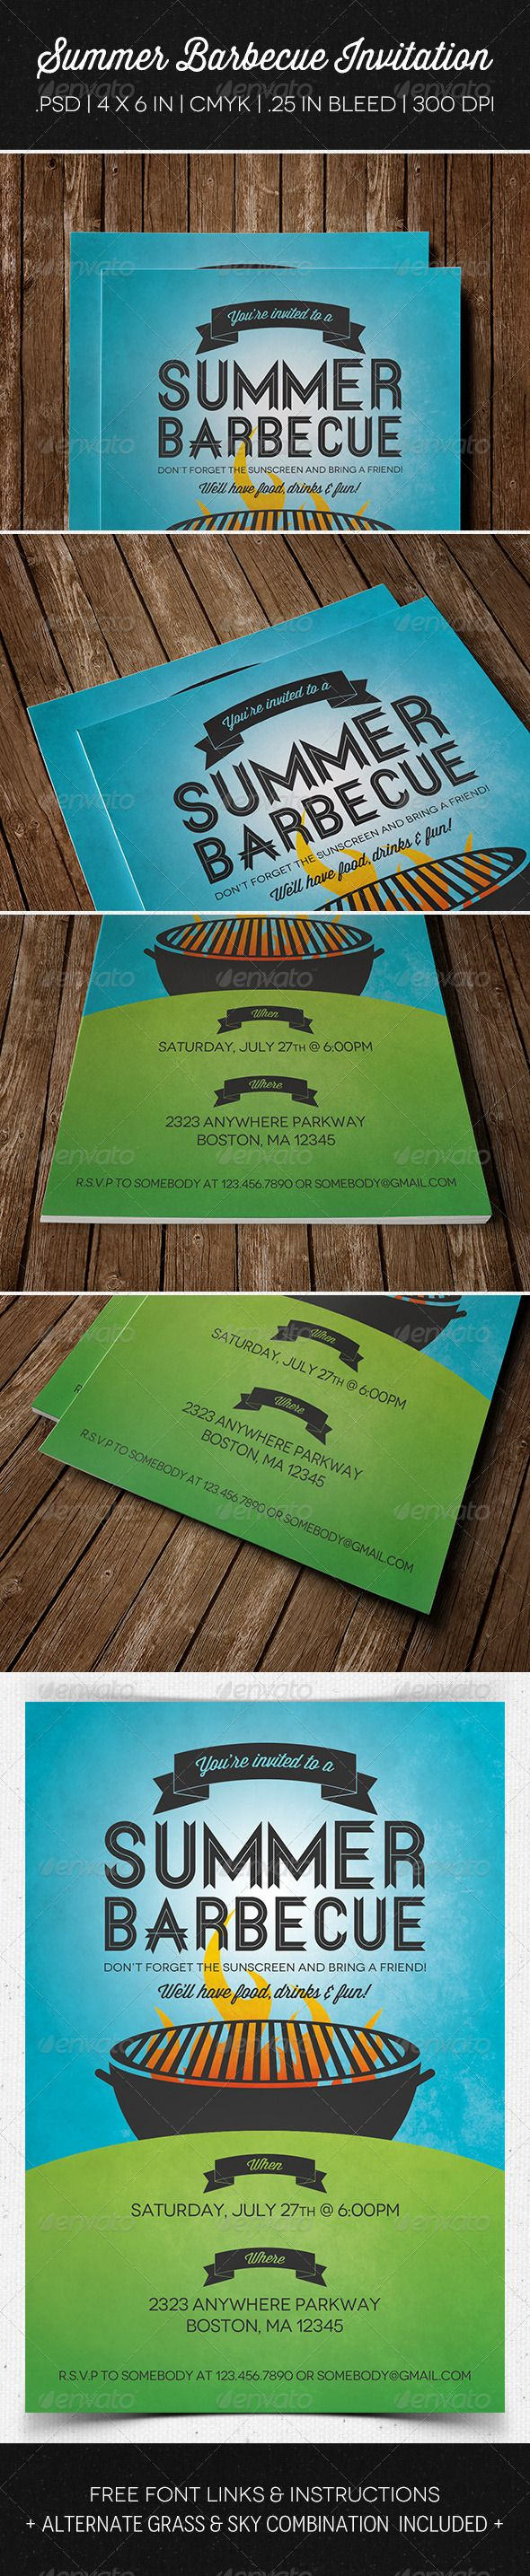 best images about invites vintage invitations summer barbecue invitation flyer